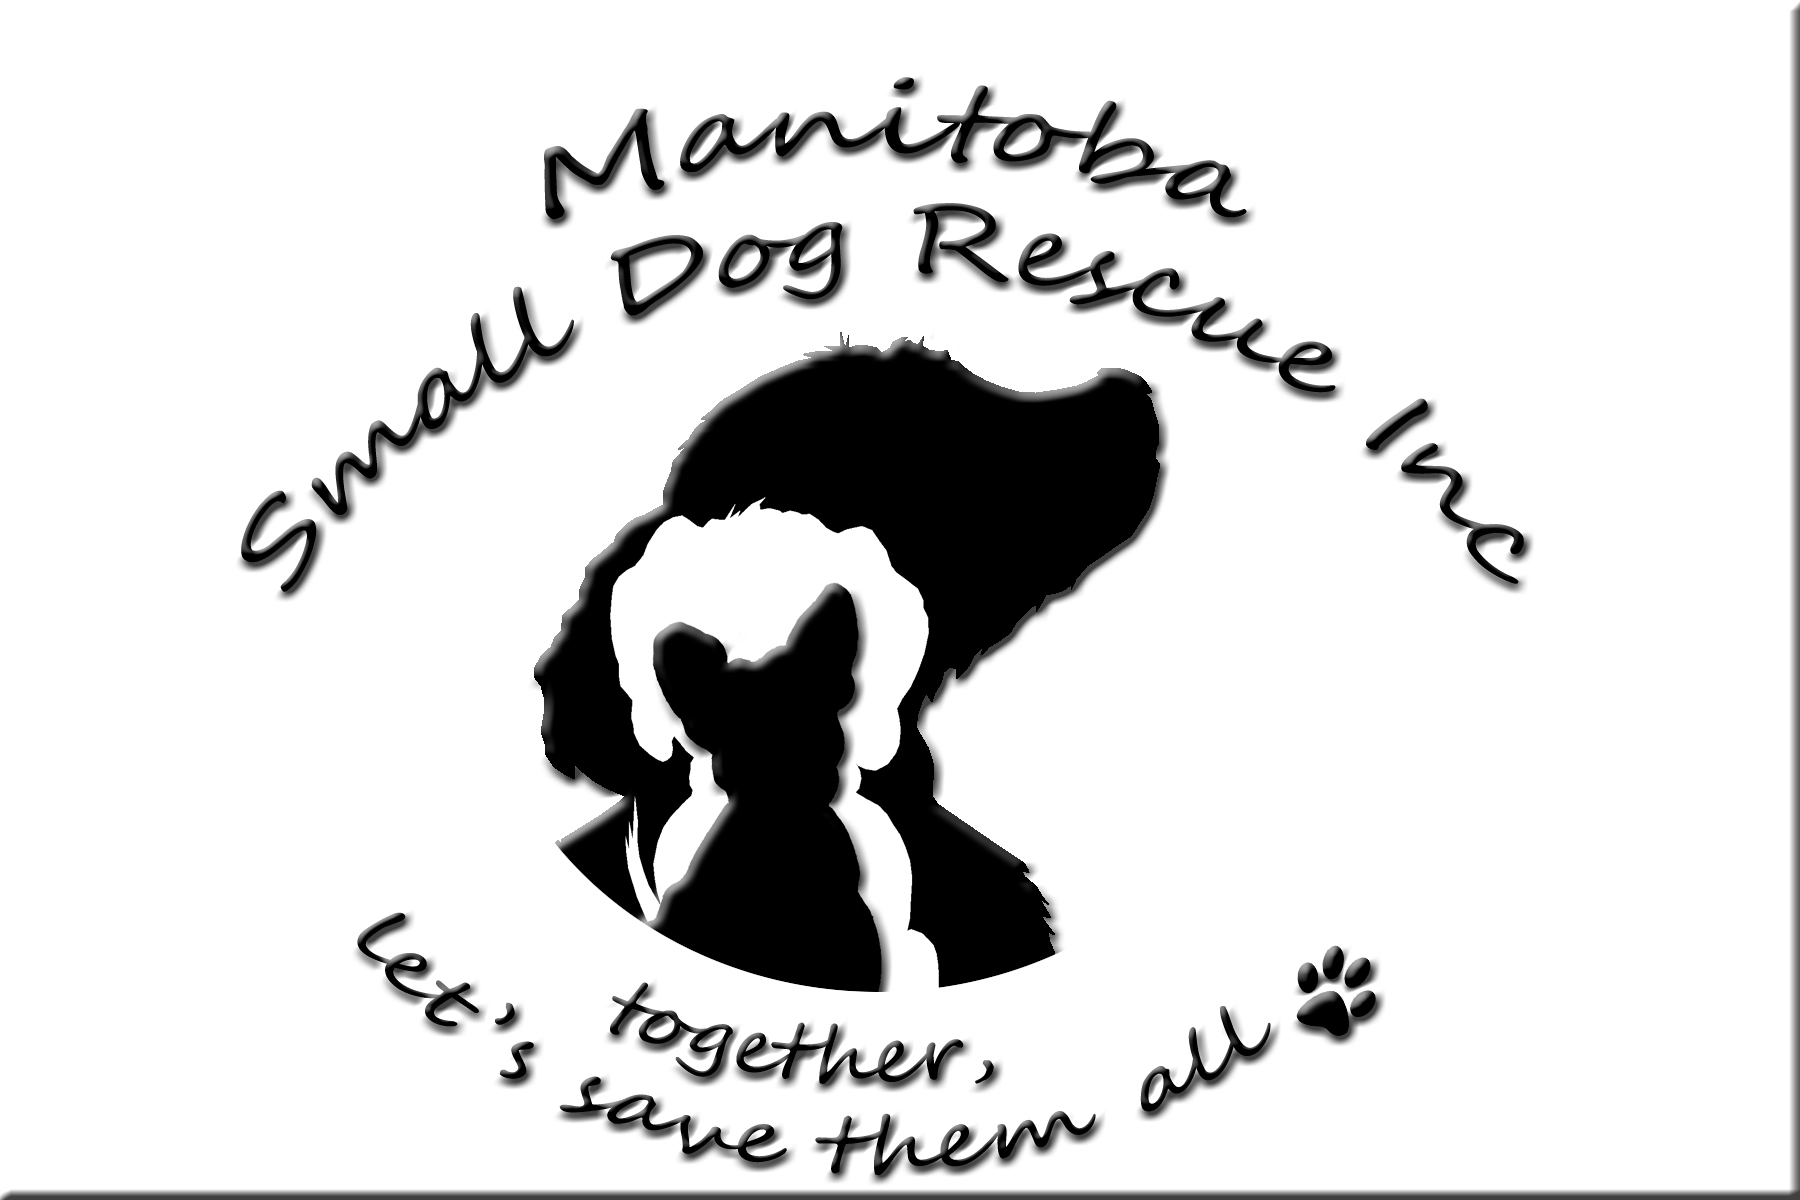 Manitoba Small Dog Rescue inc.